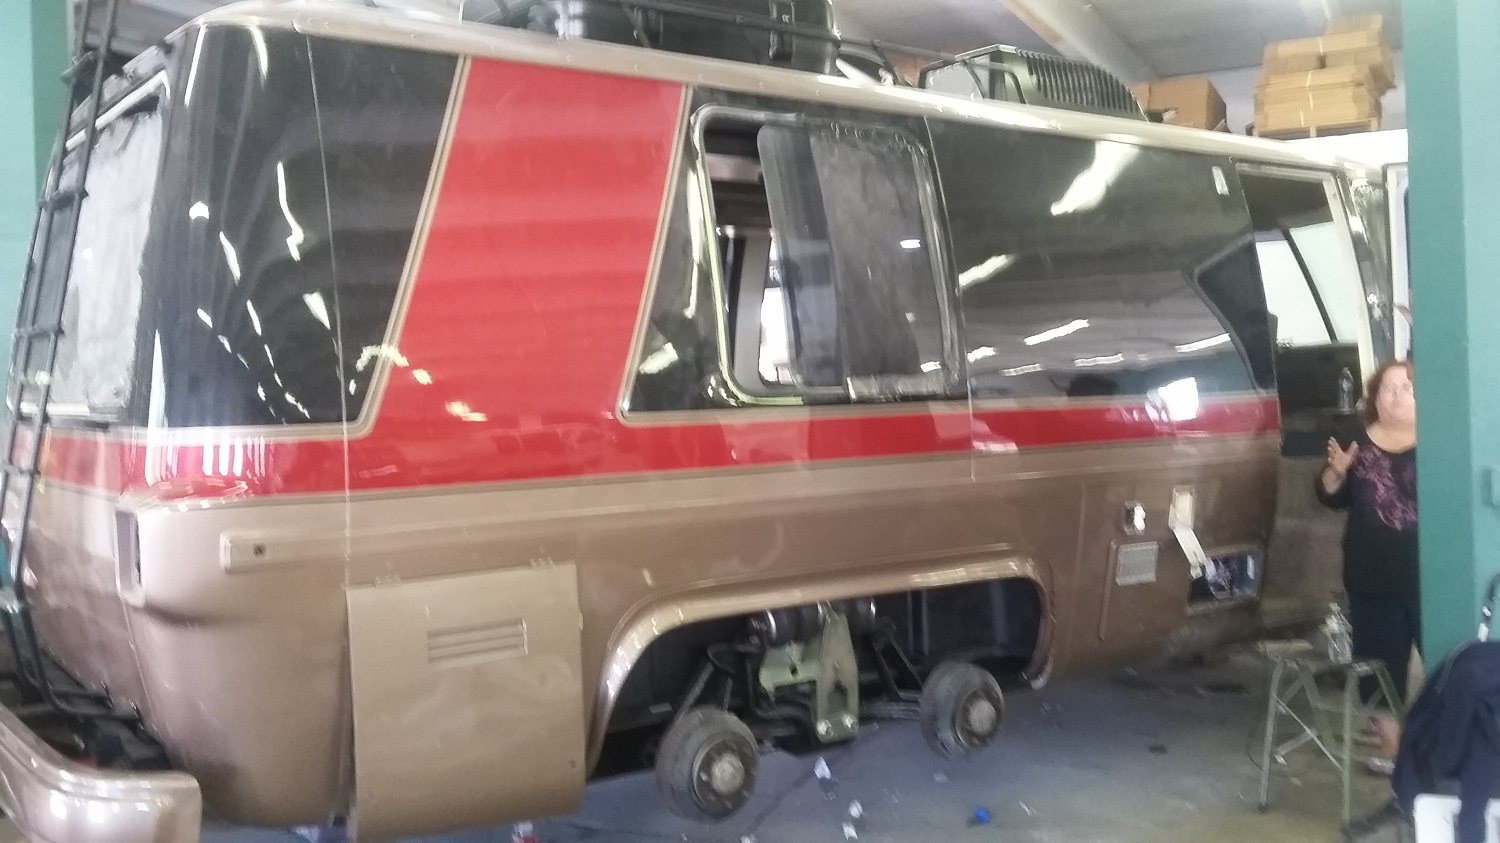 Gmc Motorhome Parts >> GMC Motorhome, Ruby's paint and the motor is on the ground and more